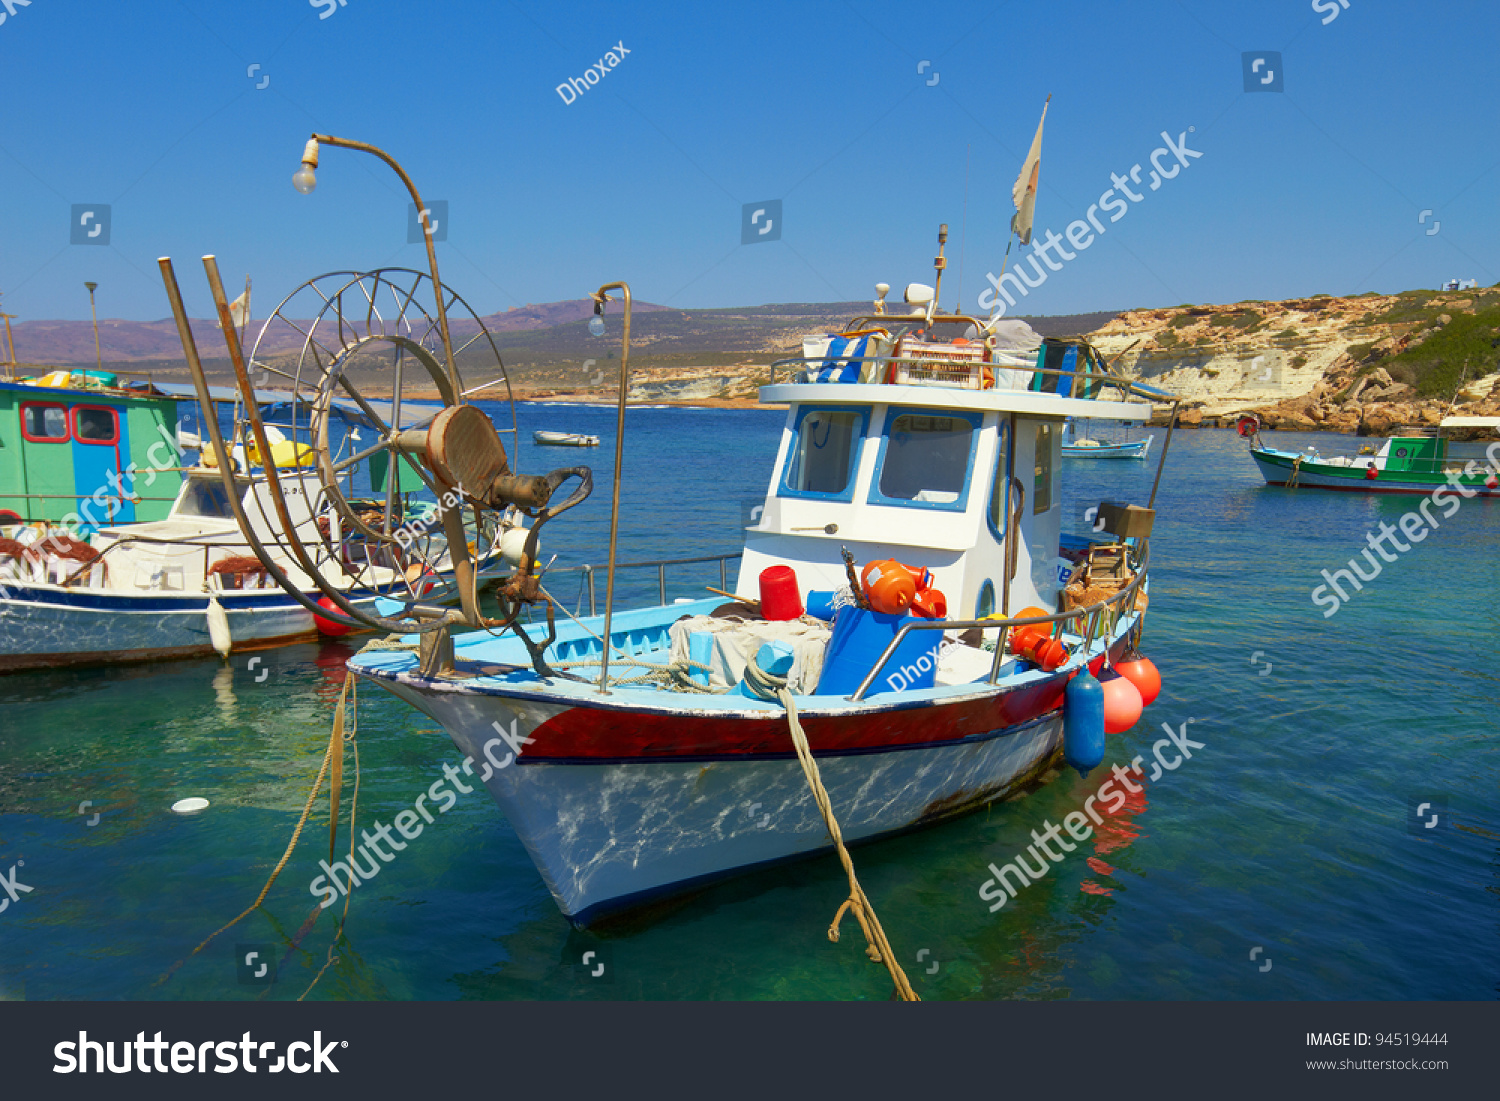 A photo of old fishing boat 94519444 shutterstock for Old fishing boat